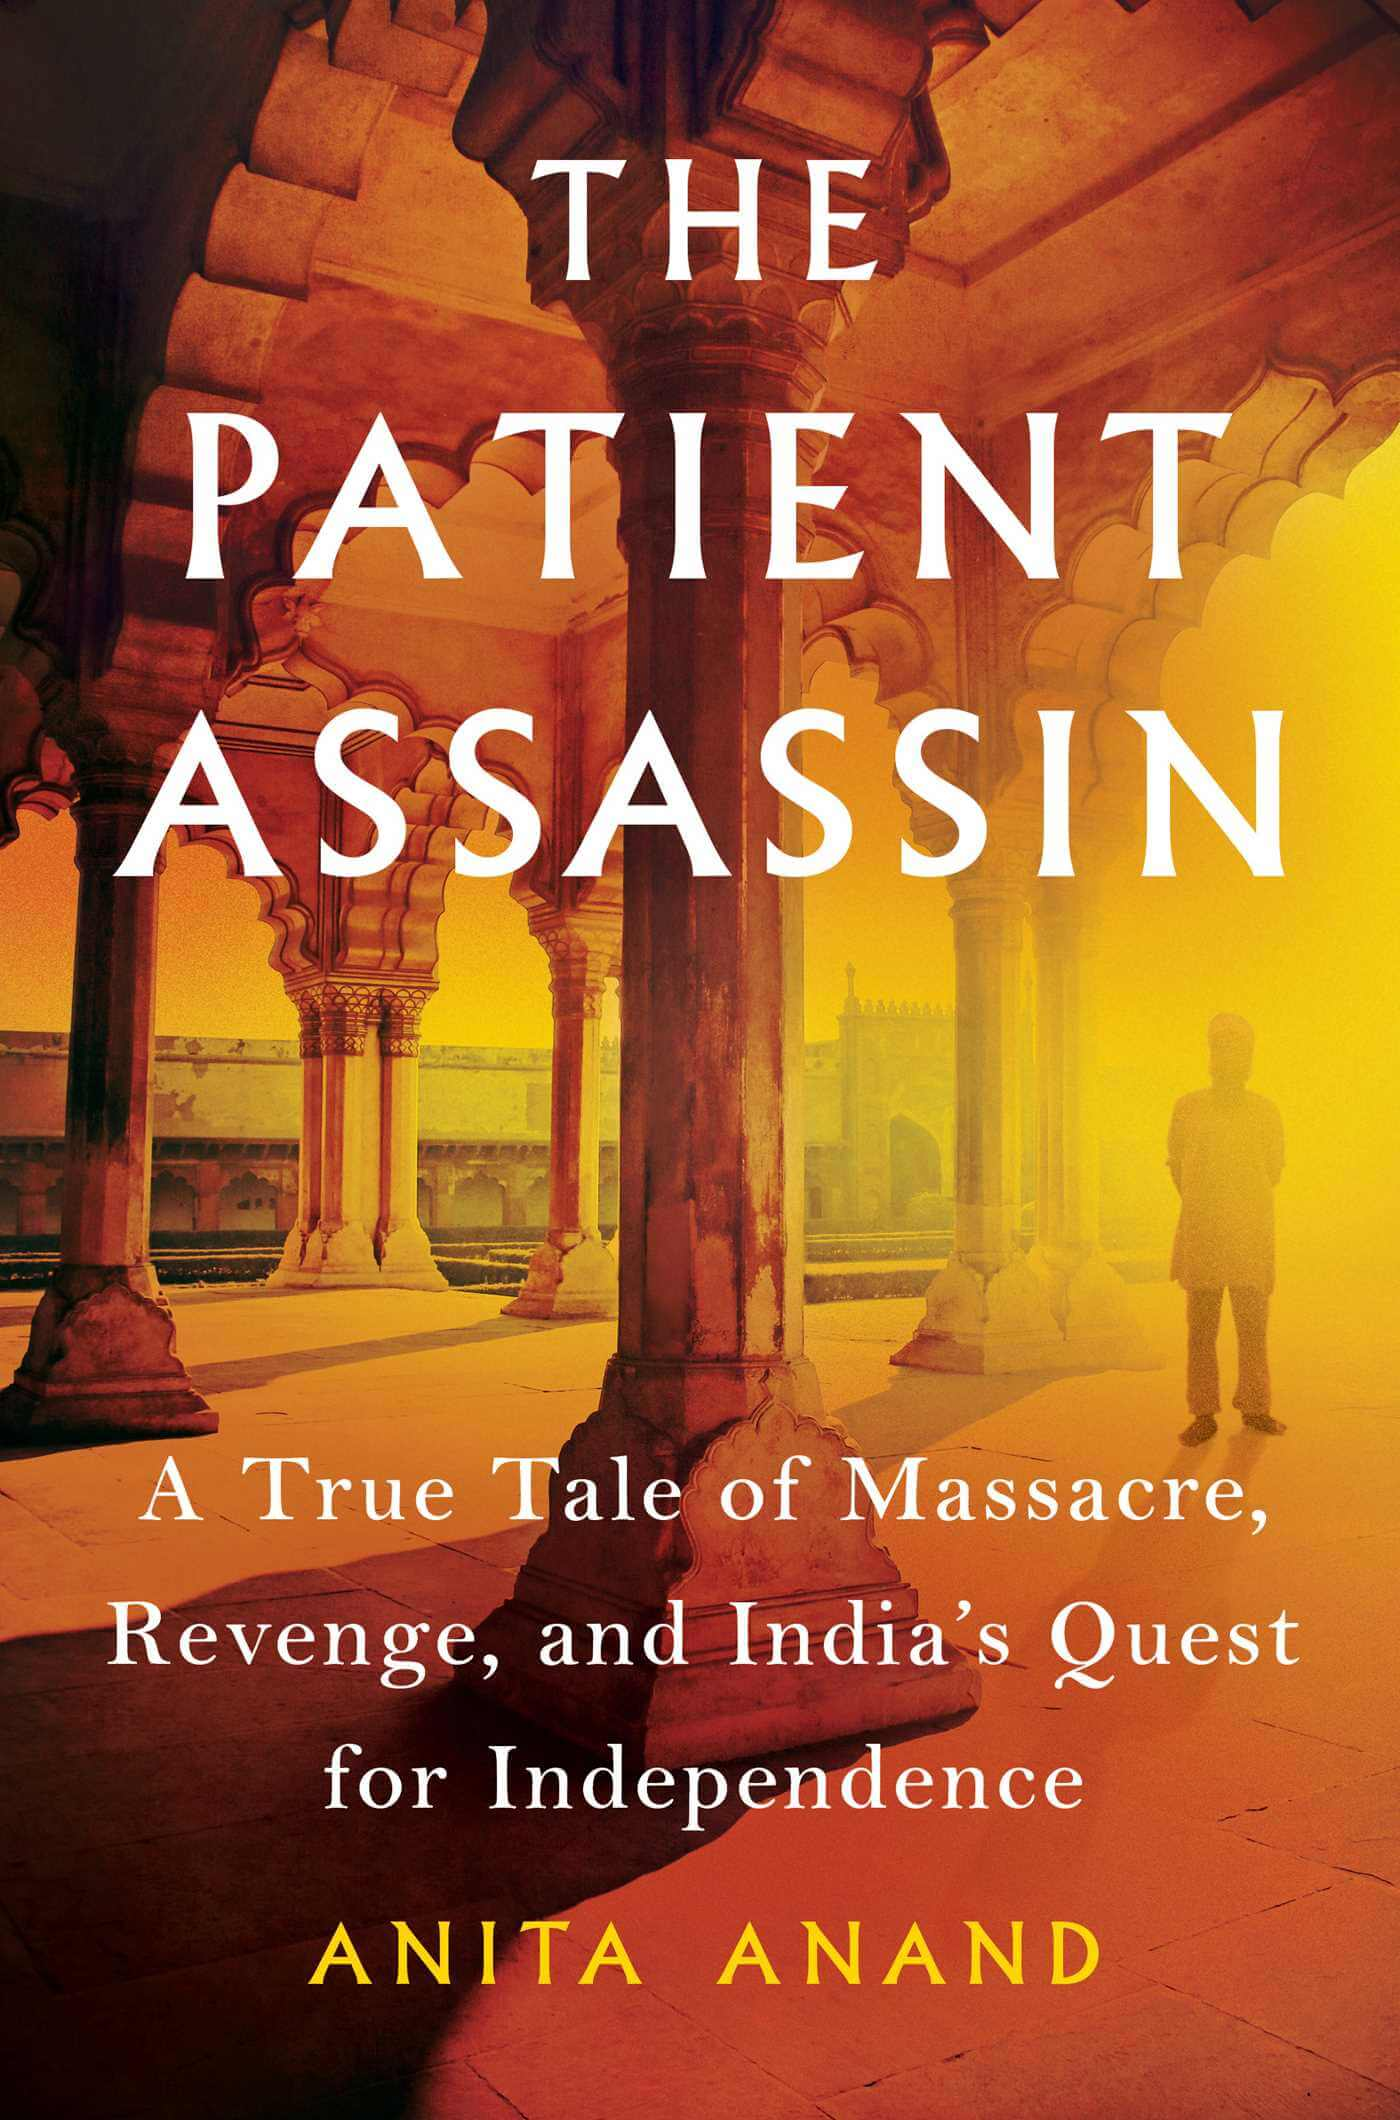 Anita Anand's The Patient Assassin